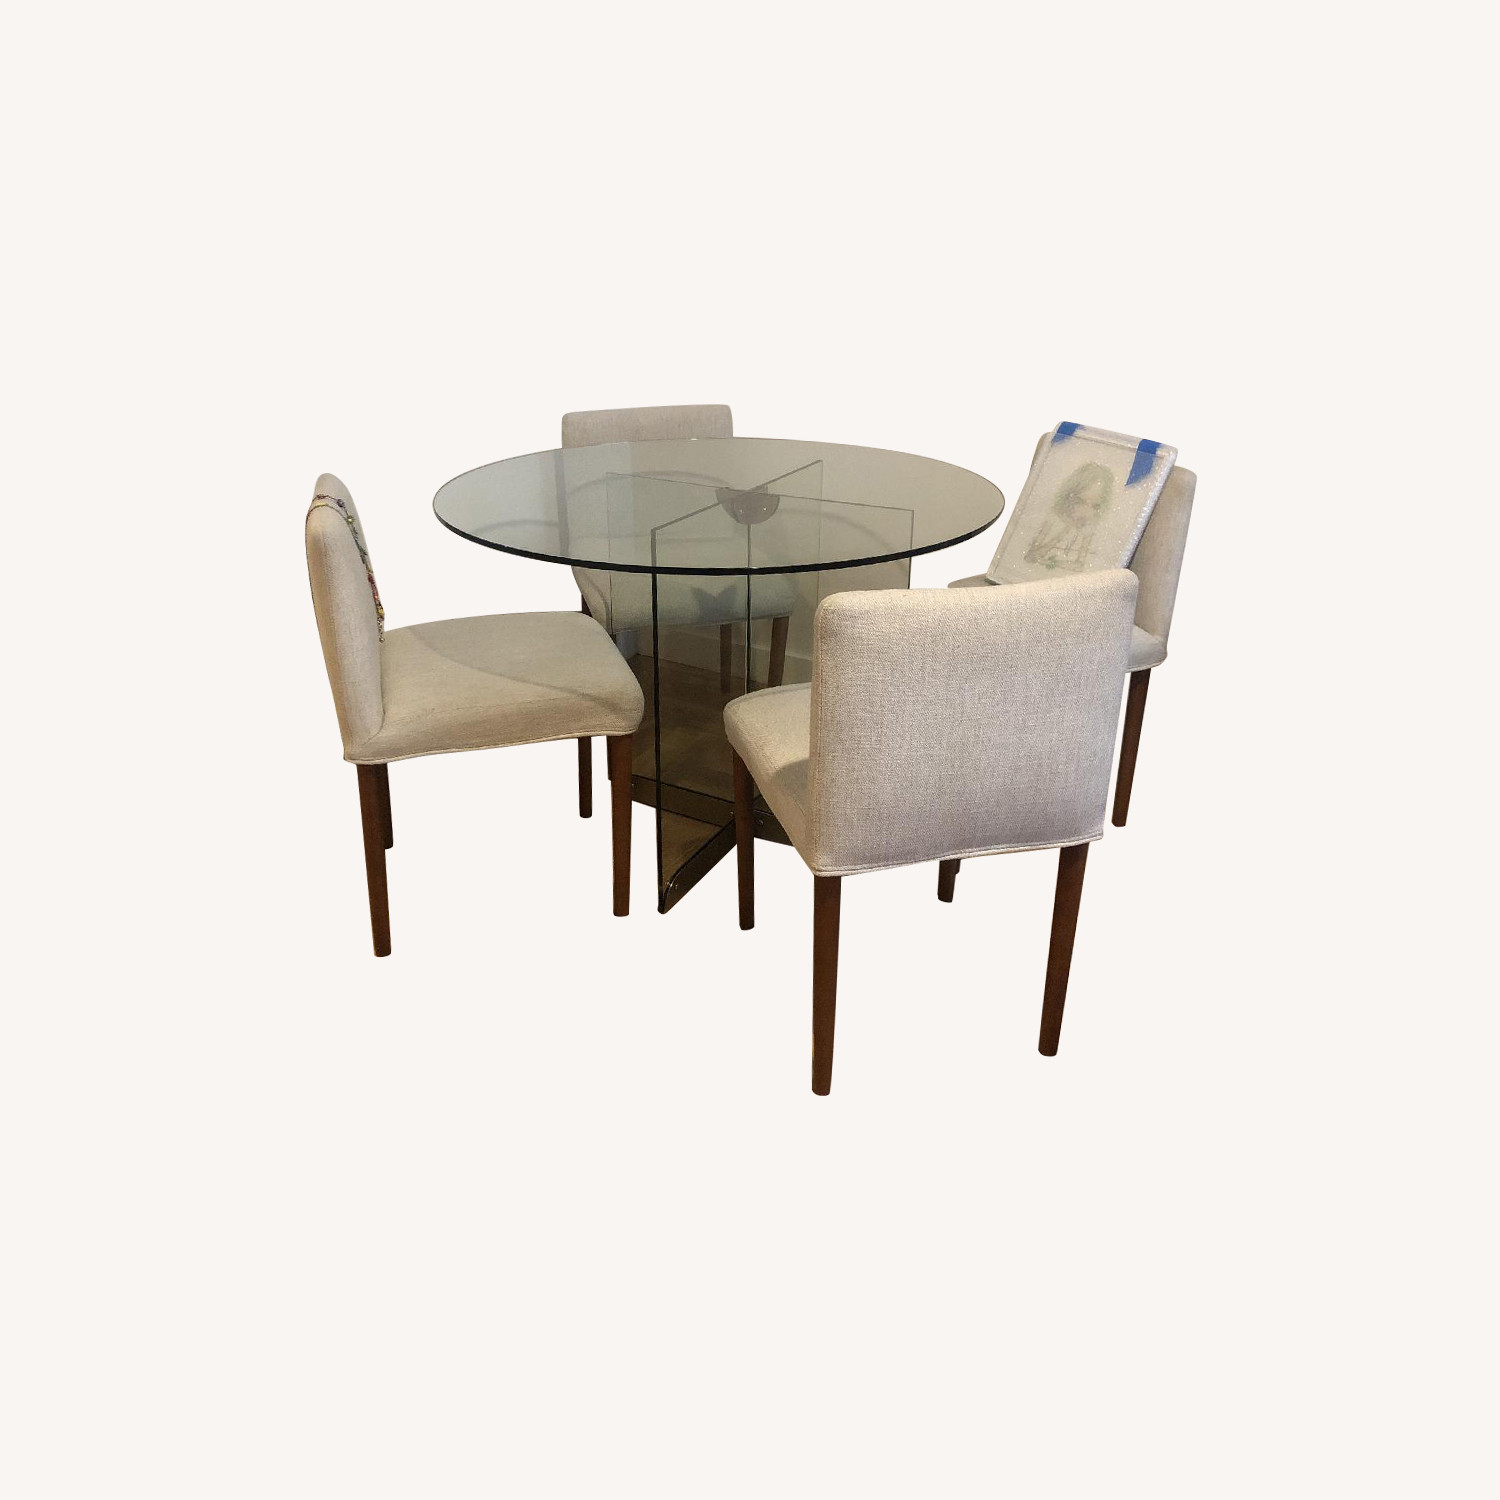 West Elm Glass Dining Table w/ 4 Wood & Fabric Chairs